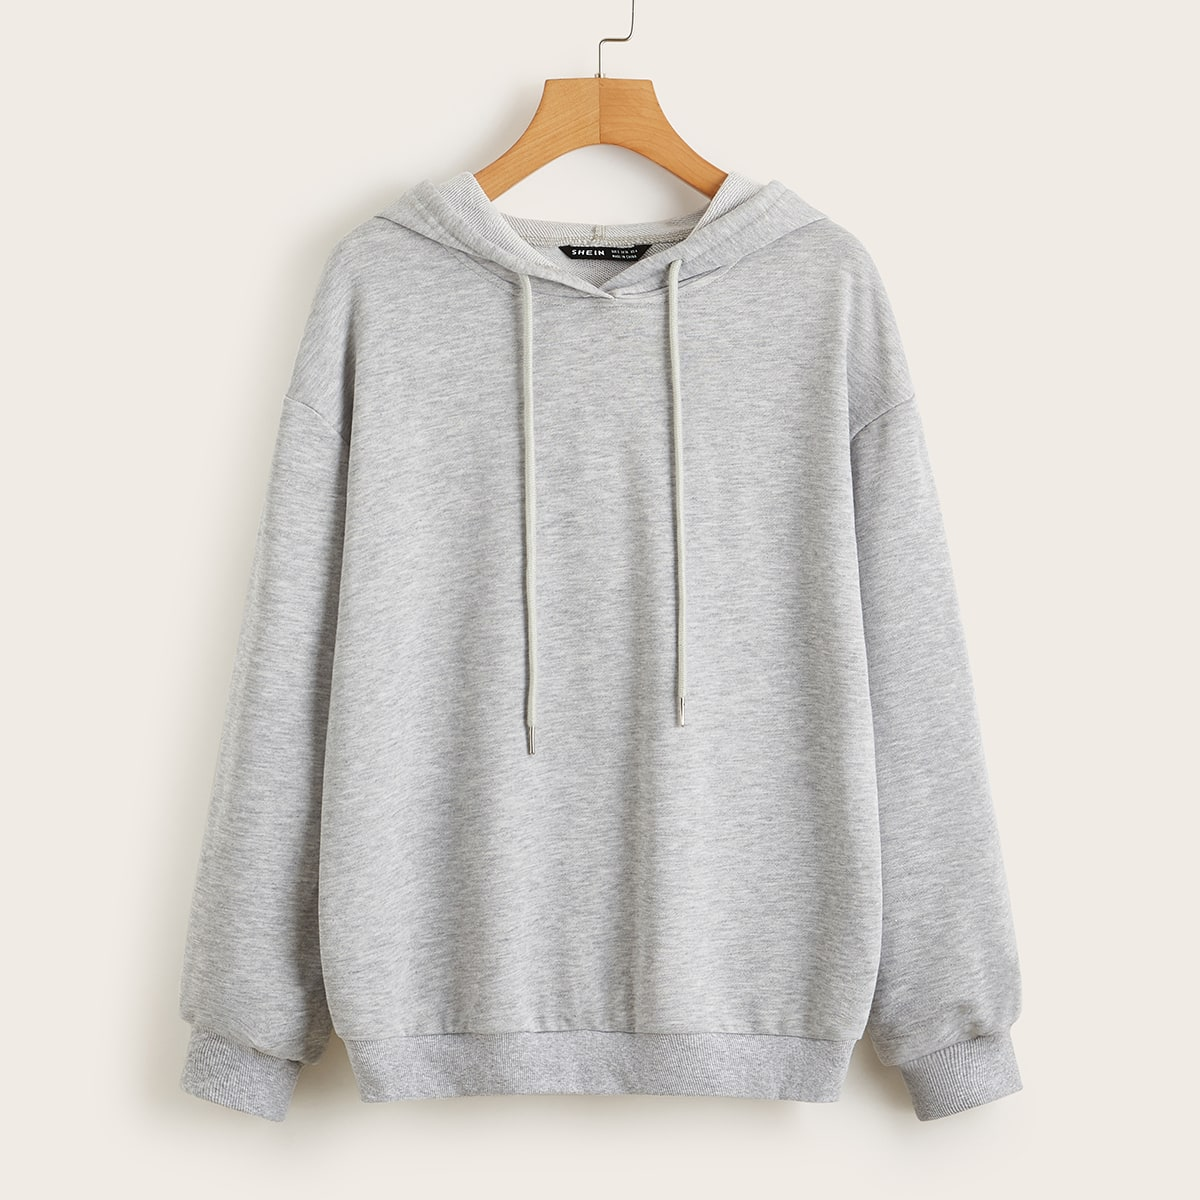 SHEIN / Drop Shoulder Heather Gray Hoodie